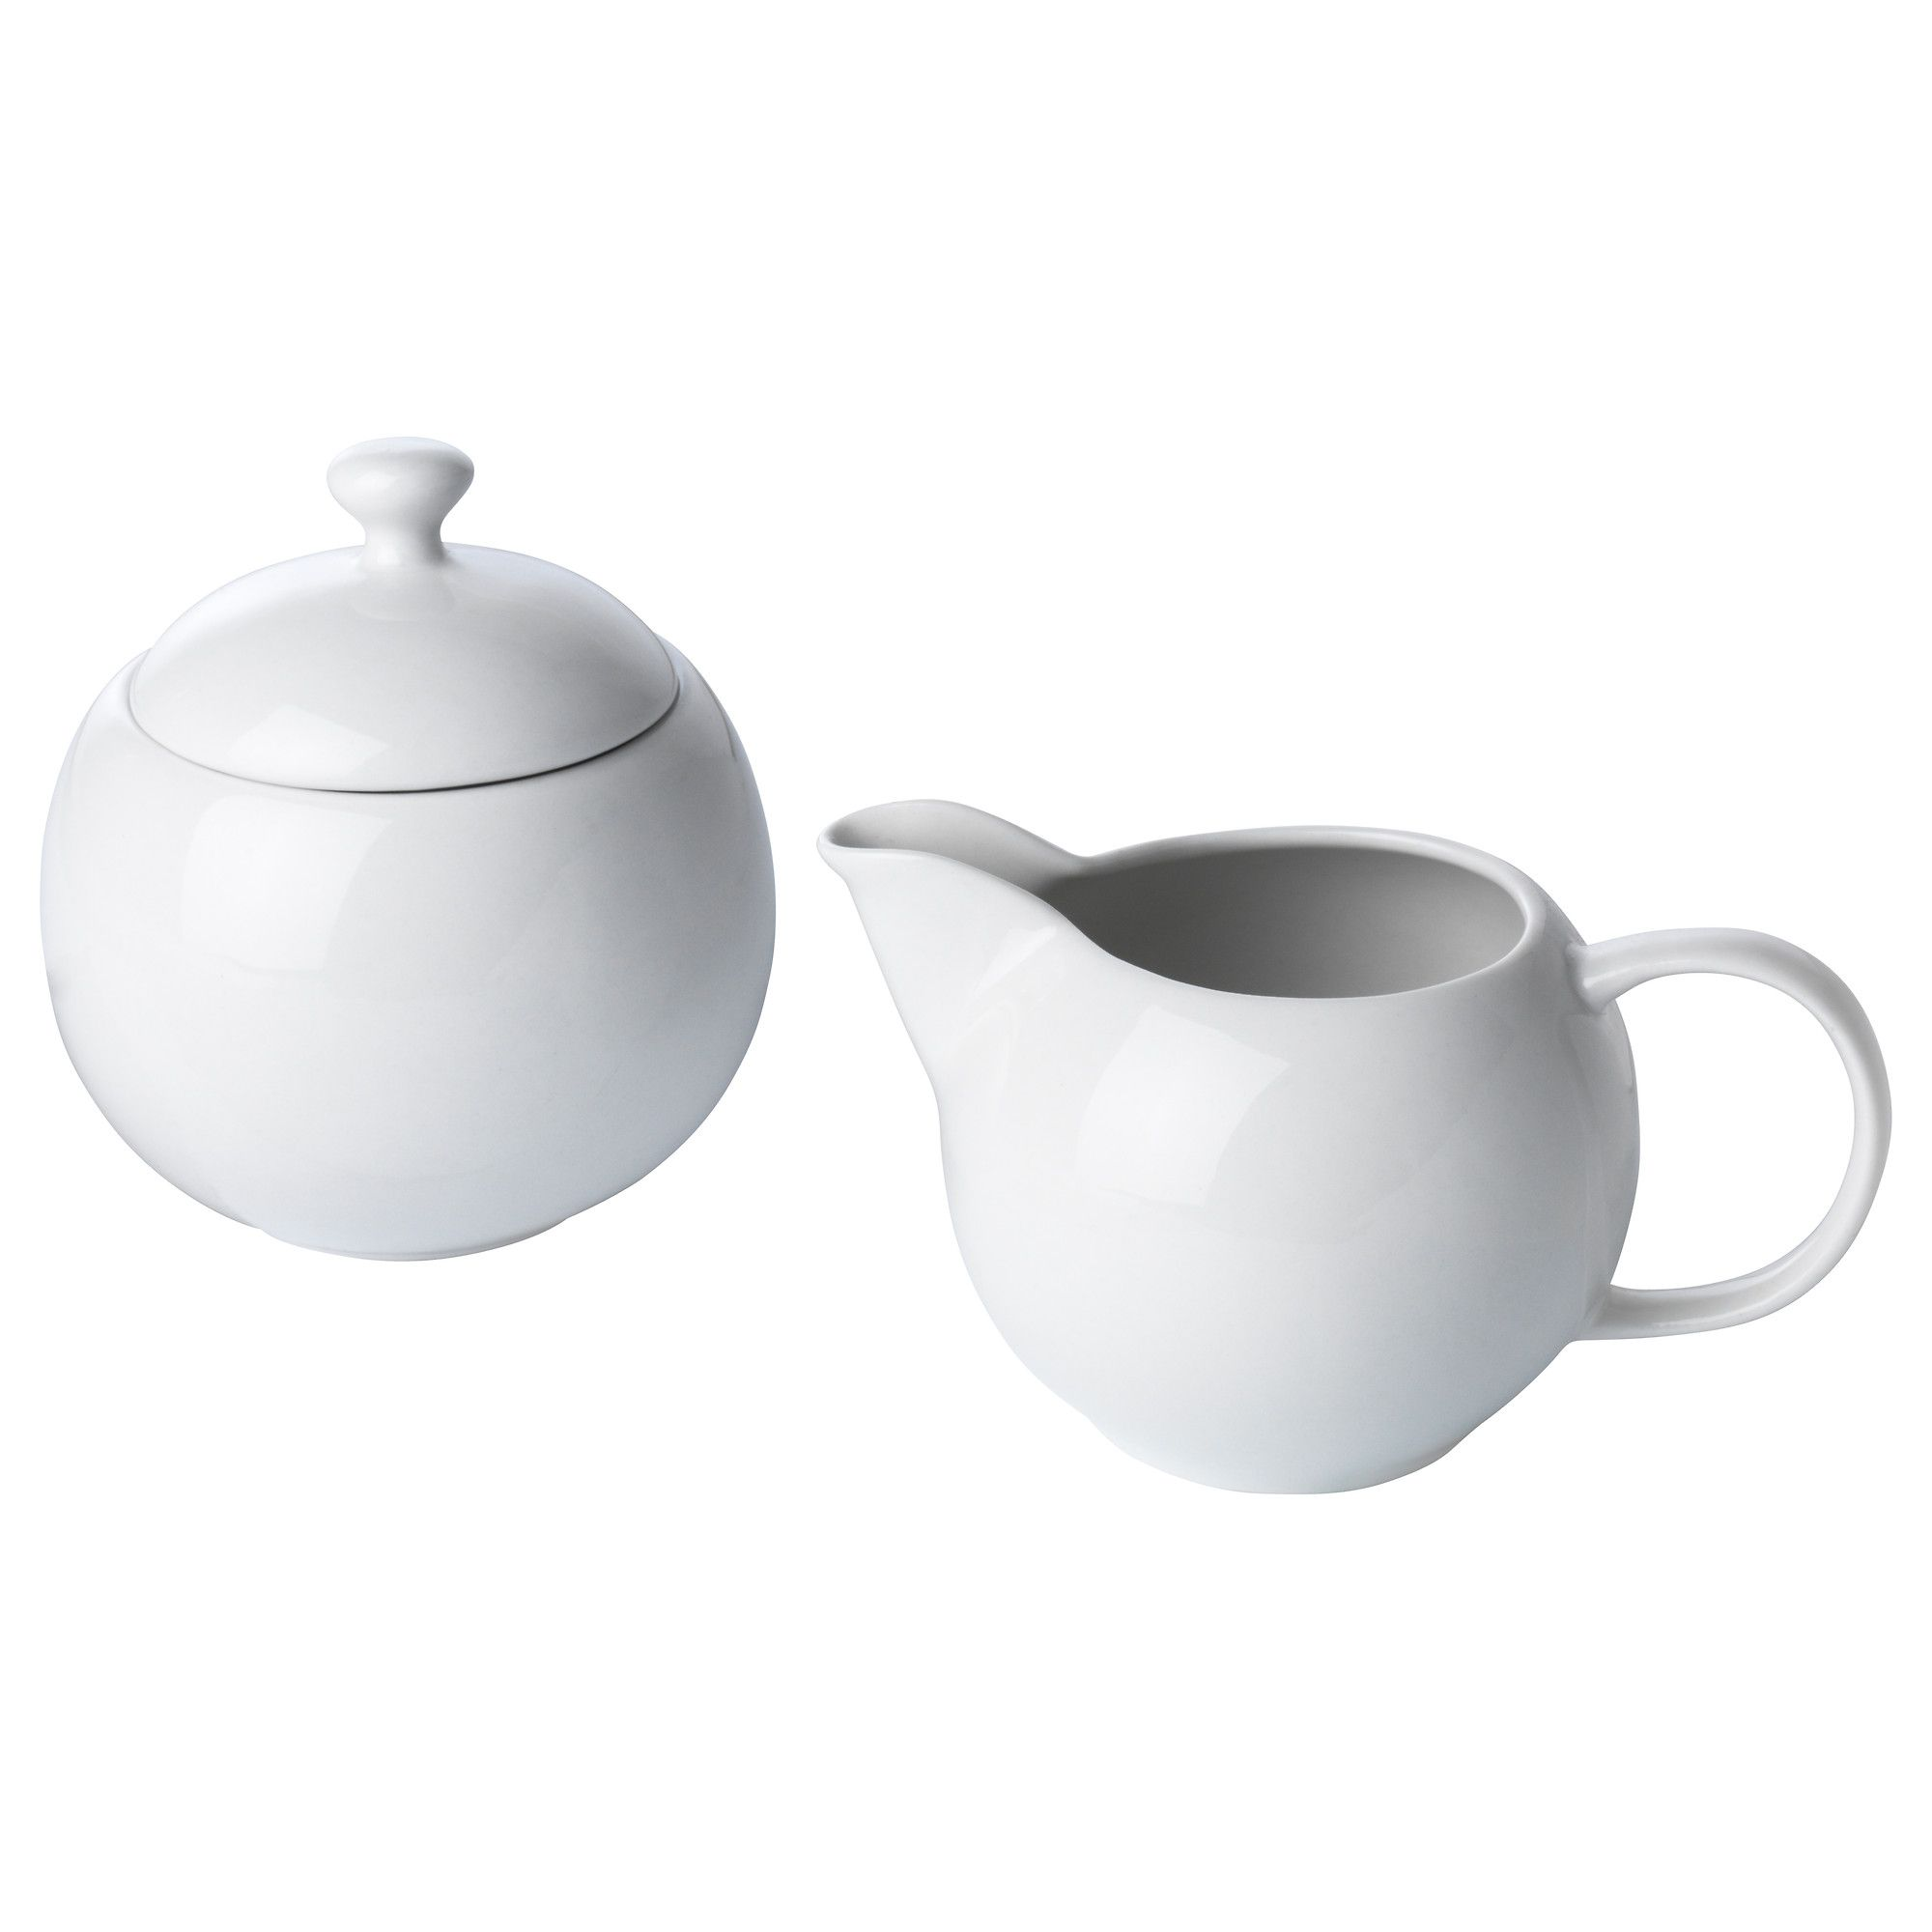 Ikea Küche Geschirr Enskild Sugar Bowl And Cream Jug Ikea Lin Ikea Tea